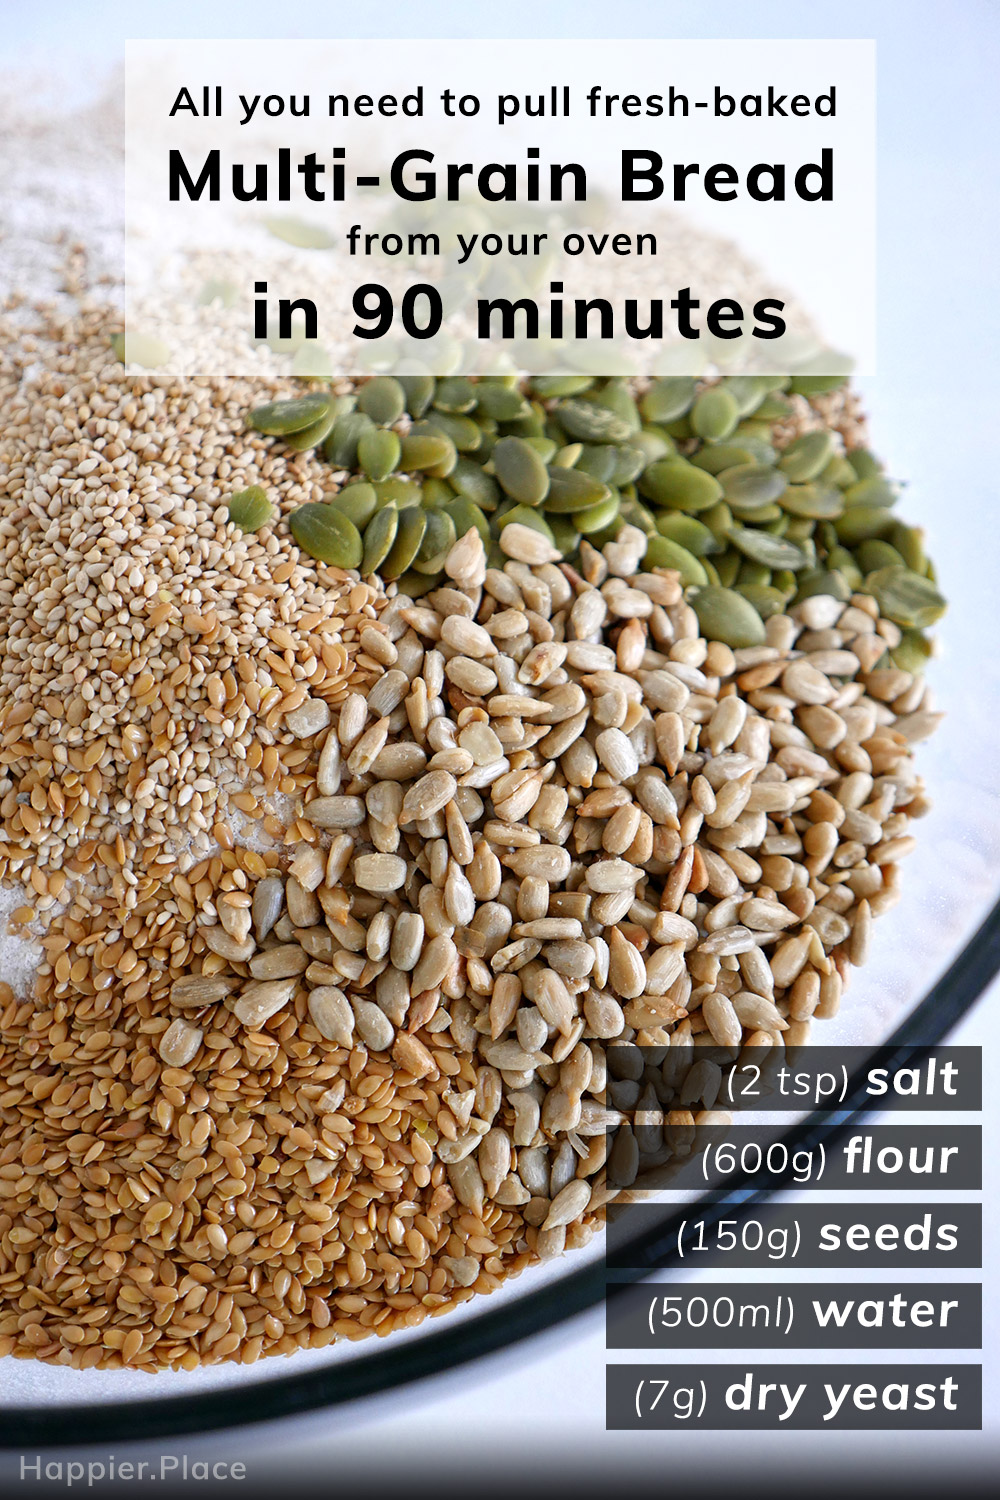 flax, sesame, sunflower, pumpkin seeds, flour - all you need to pull fresh-baked multi-grain bread from your oven in 90 minutes, with measurements